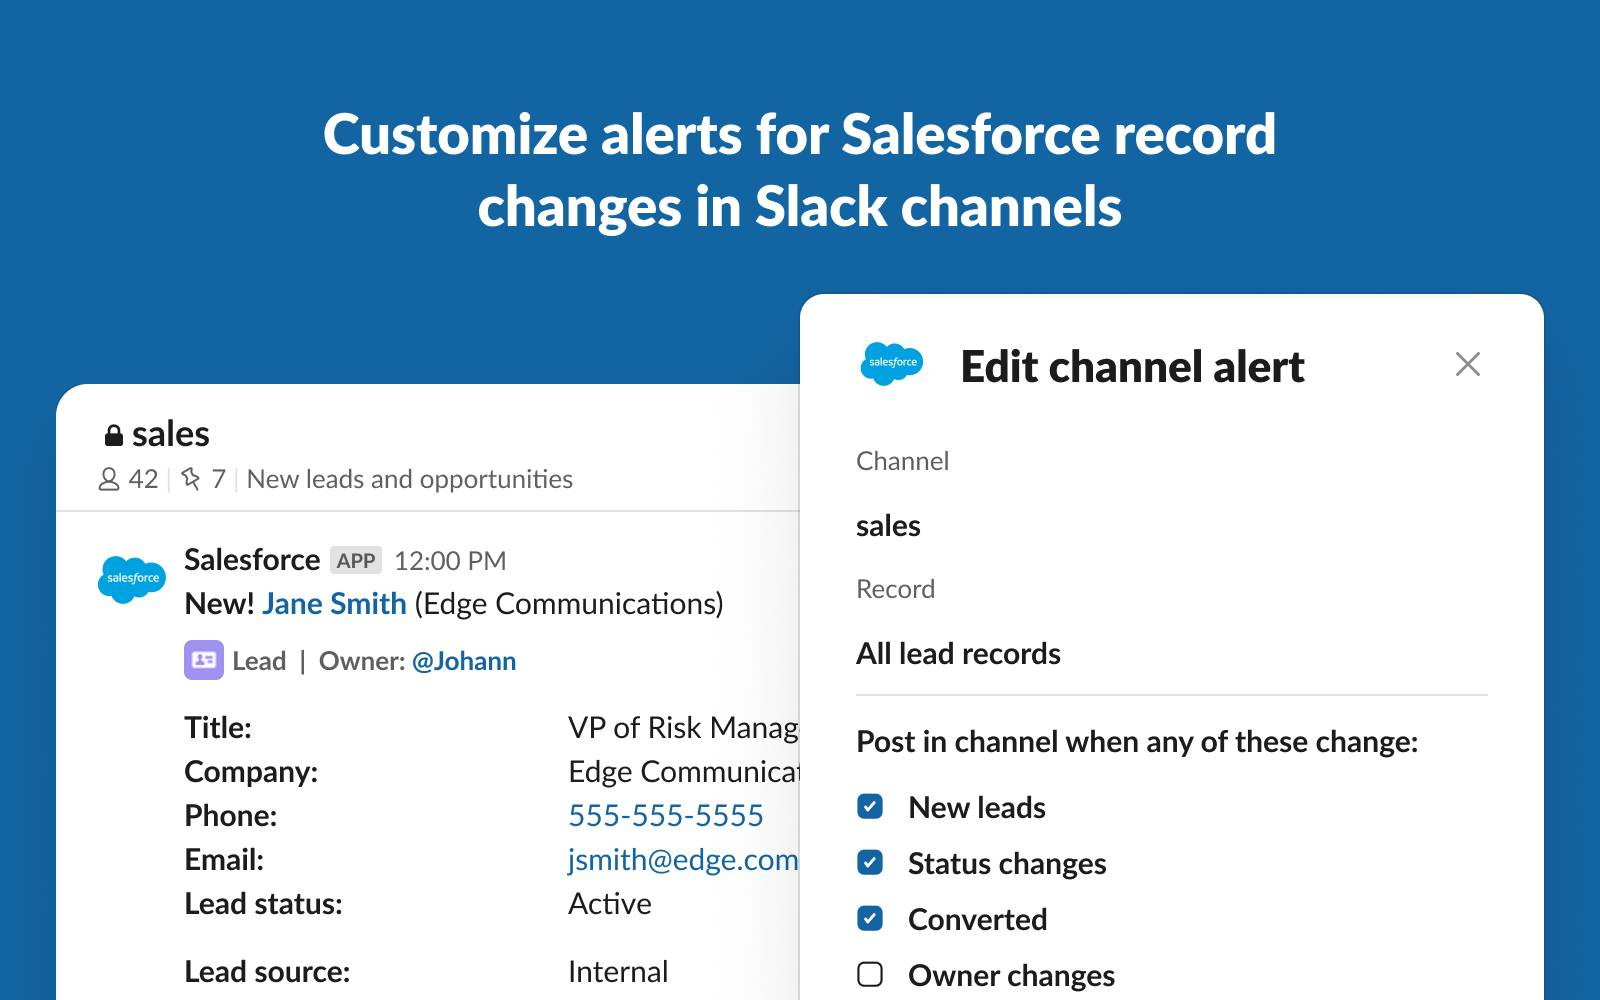 Customize alerts for Salesforce record changes in Slack channels; Johann views customization settings for alerts on new leads